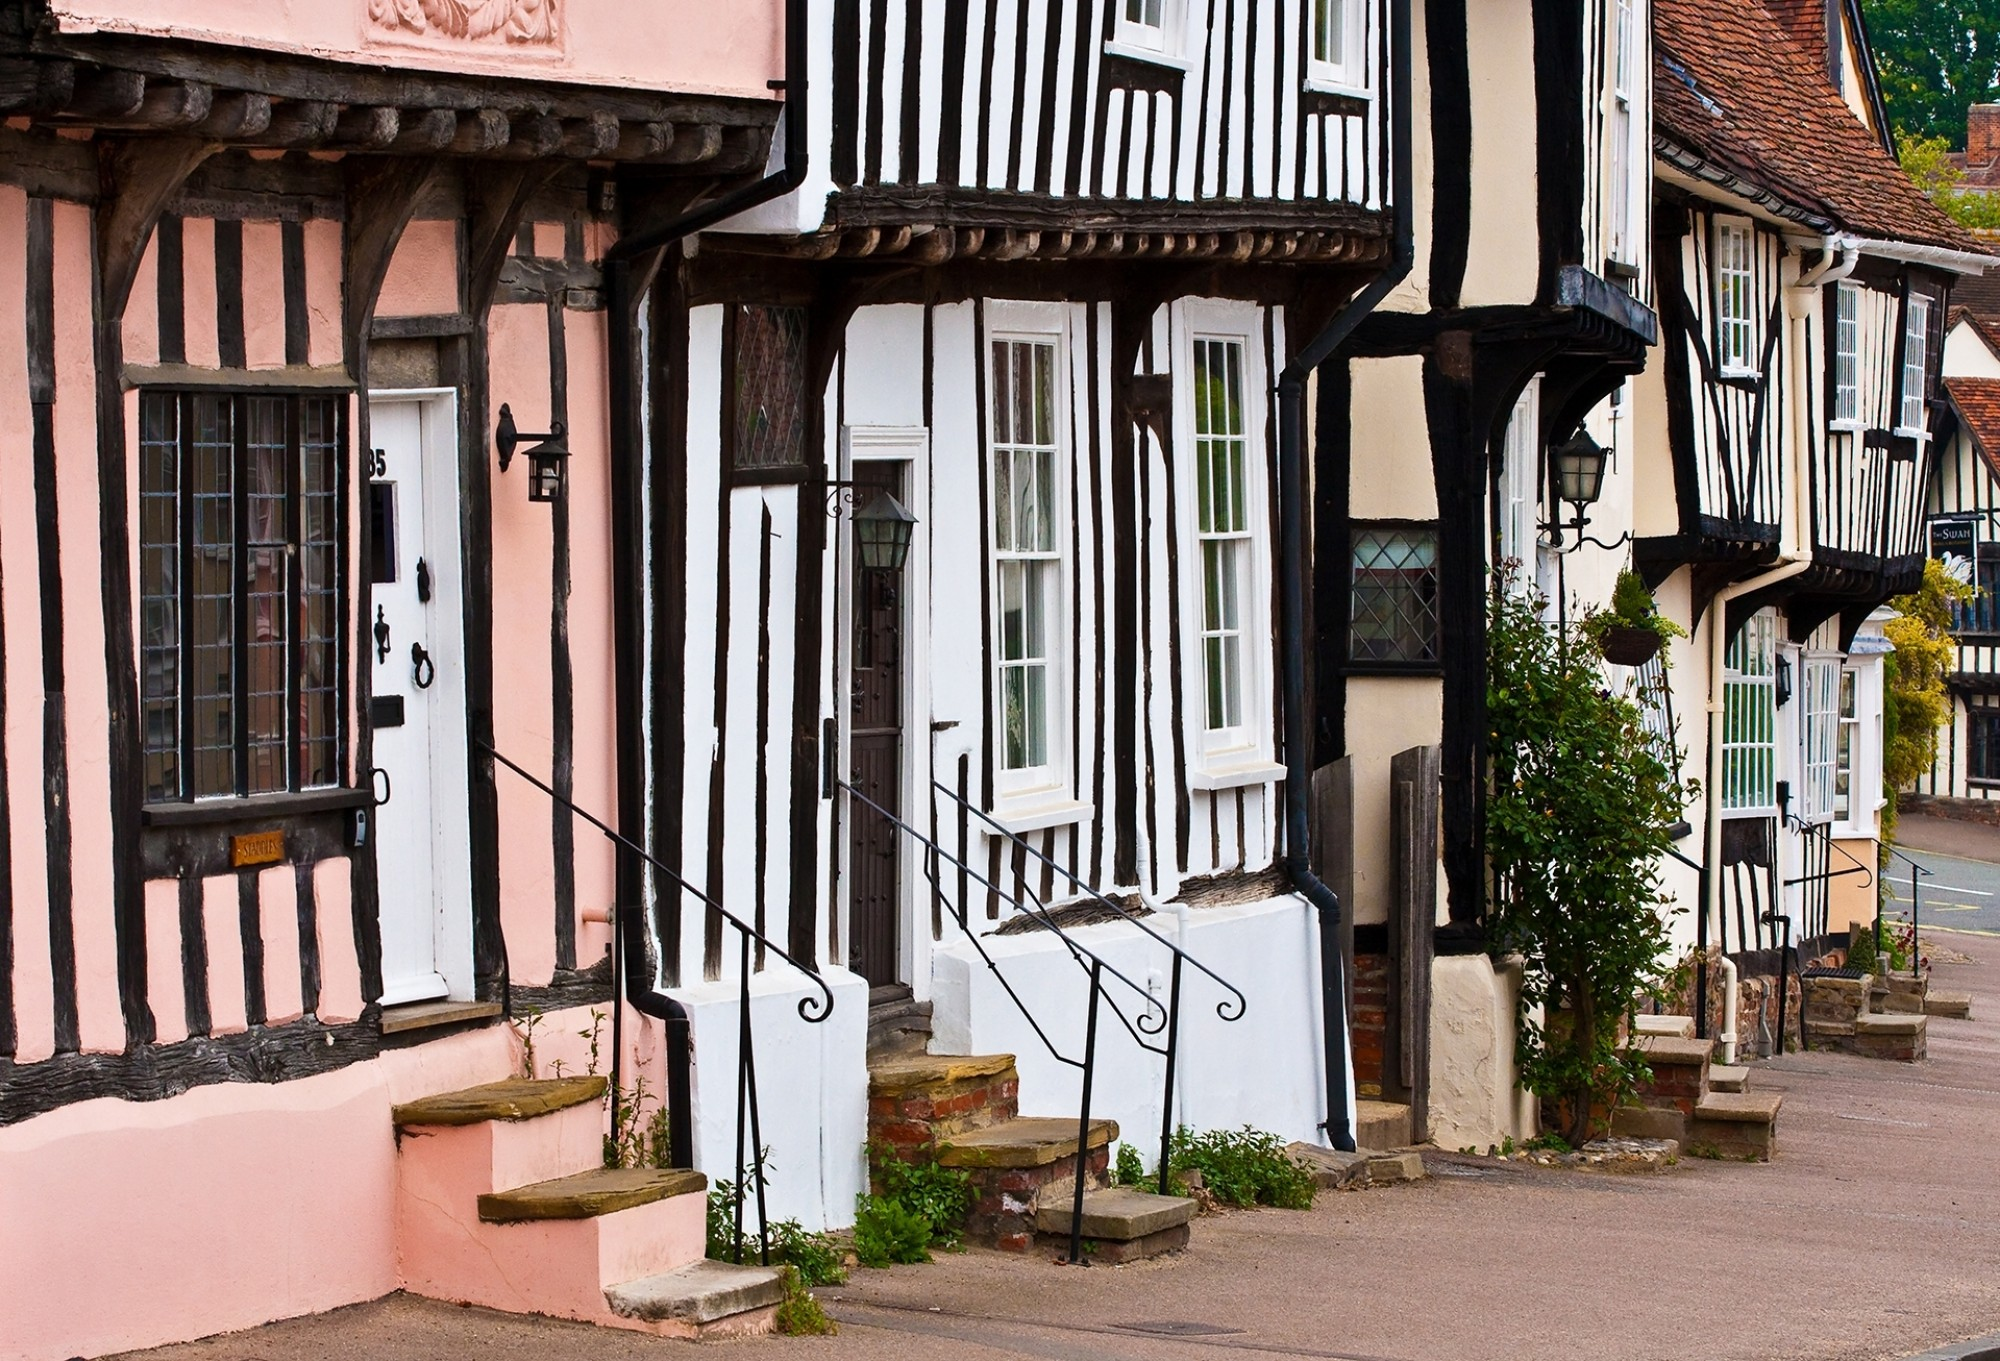 A-row-of-colorful-old-town-houses-in-Lavenham-England